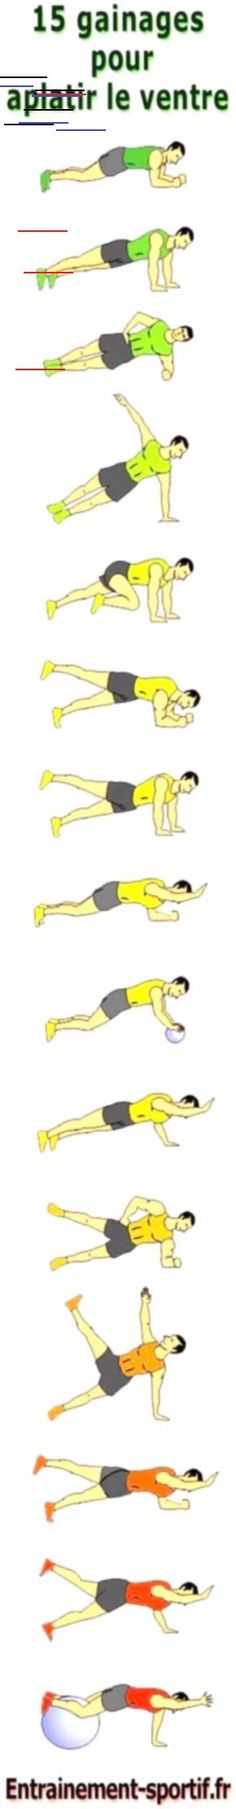 du ventre : Programme de gainage pour la ceinture abdominale -Perdre du ventre : Programme de gainage pour la ceinture abdominale - month workout challenge✨you are ready ?🍑💪 19 Quick Exercise Workout Routines To Get You Fit And Toned For Summer Flat Abs Workout, Abs Workout Routines, Workouts, Core Workout Challenge, Best Flats, Build Muscle, Bobby Pins, Hair Accessories, Hairstyle